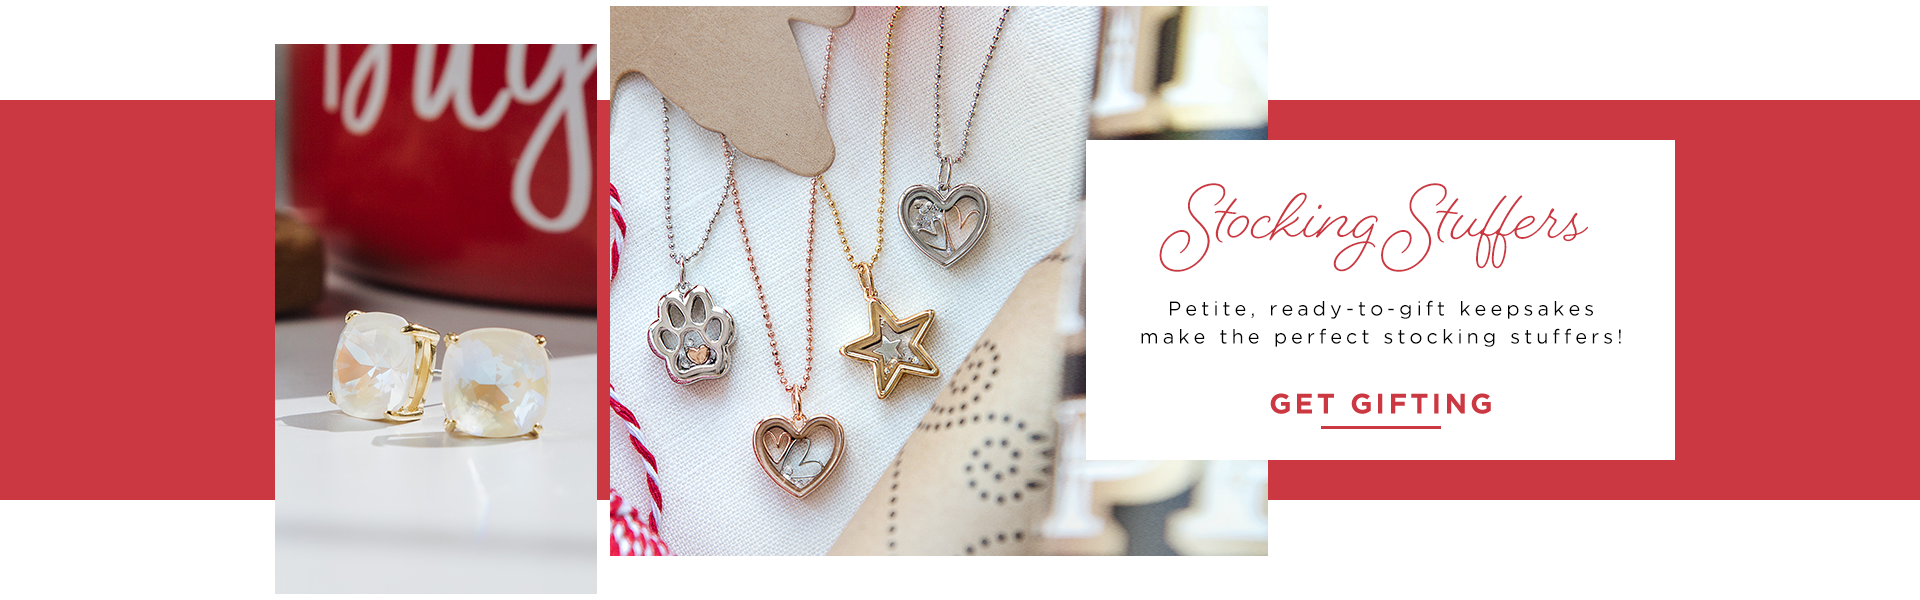 Stocking Stuffers - Capsule Necklaces